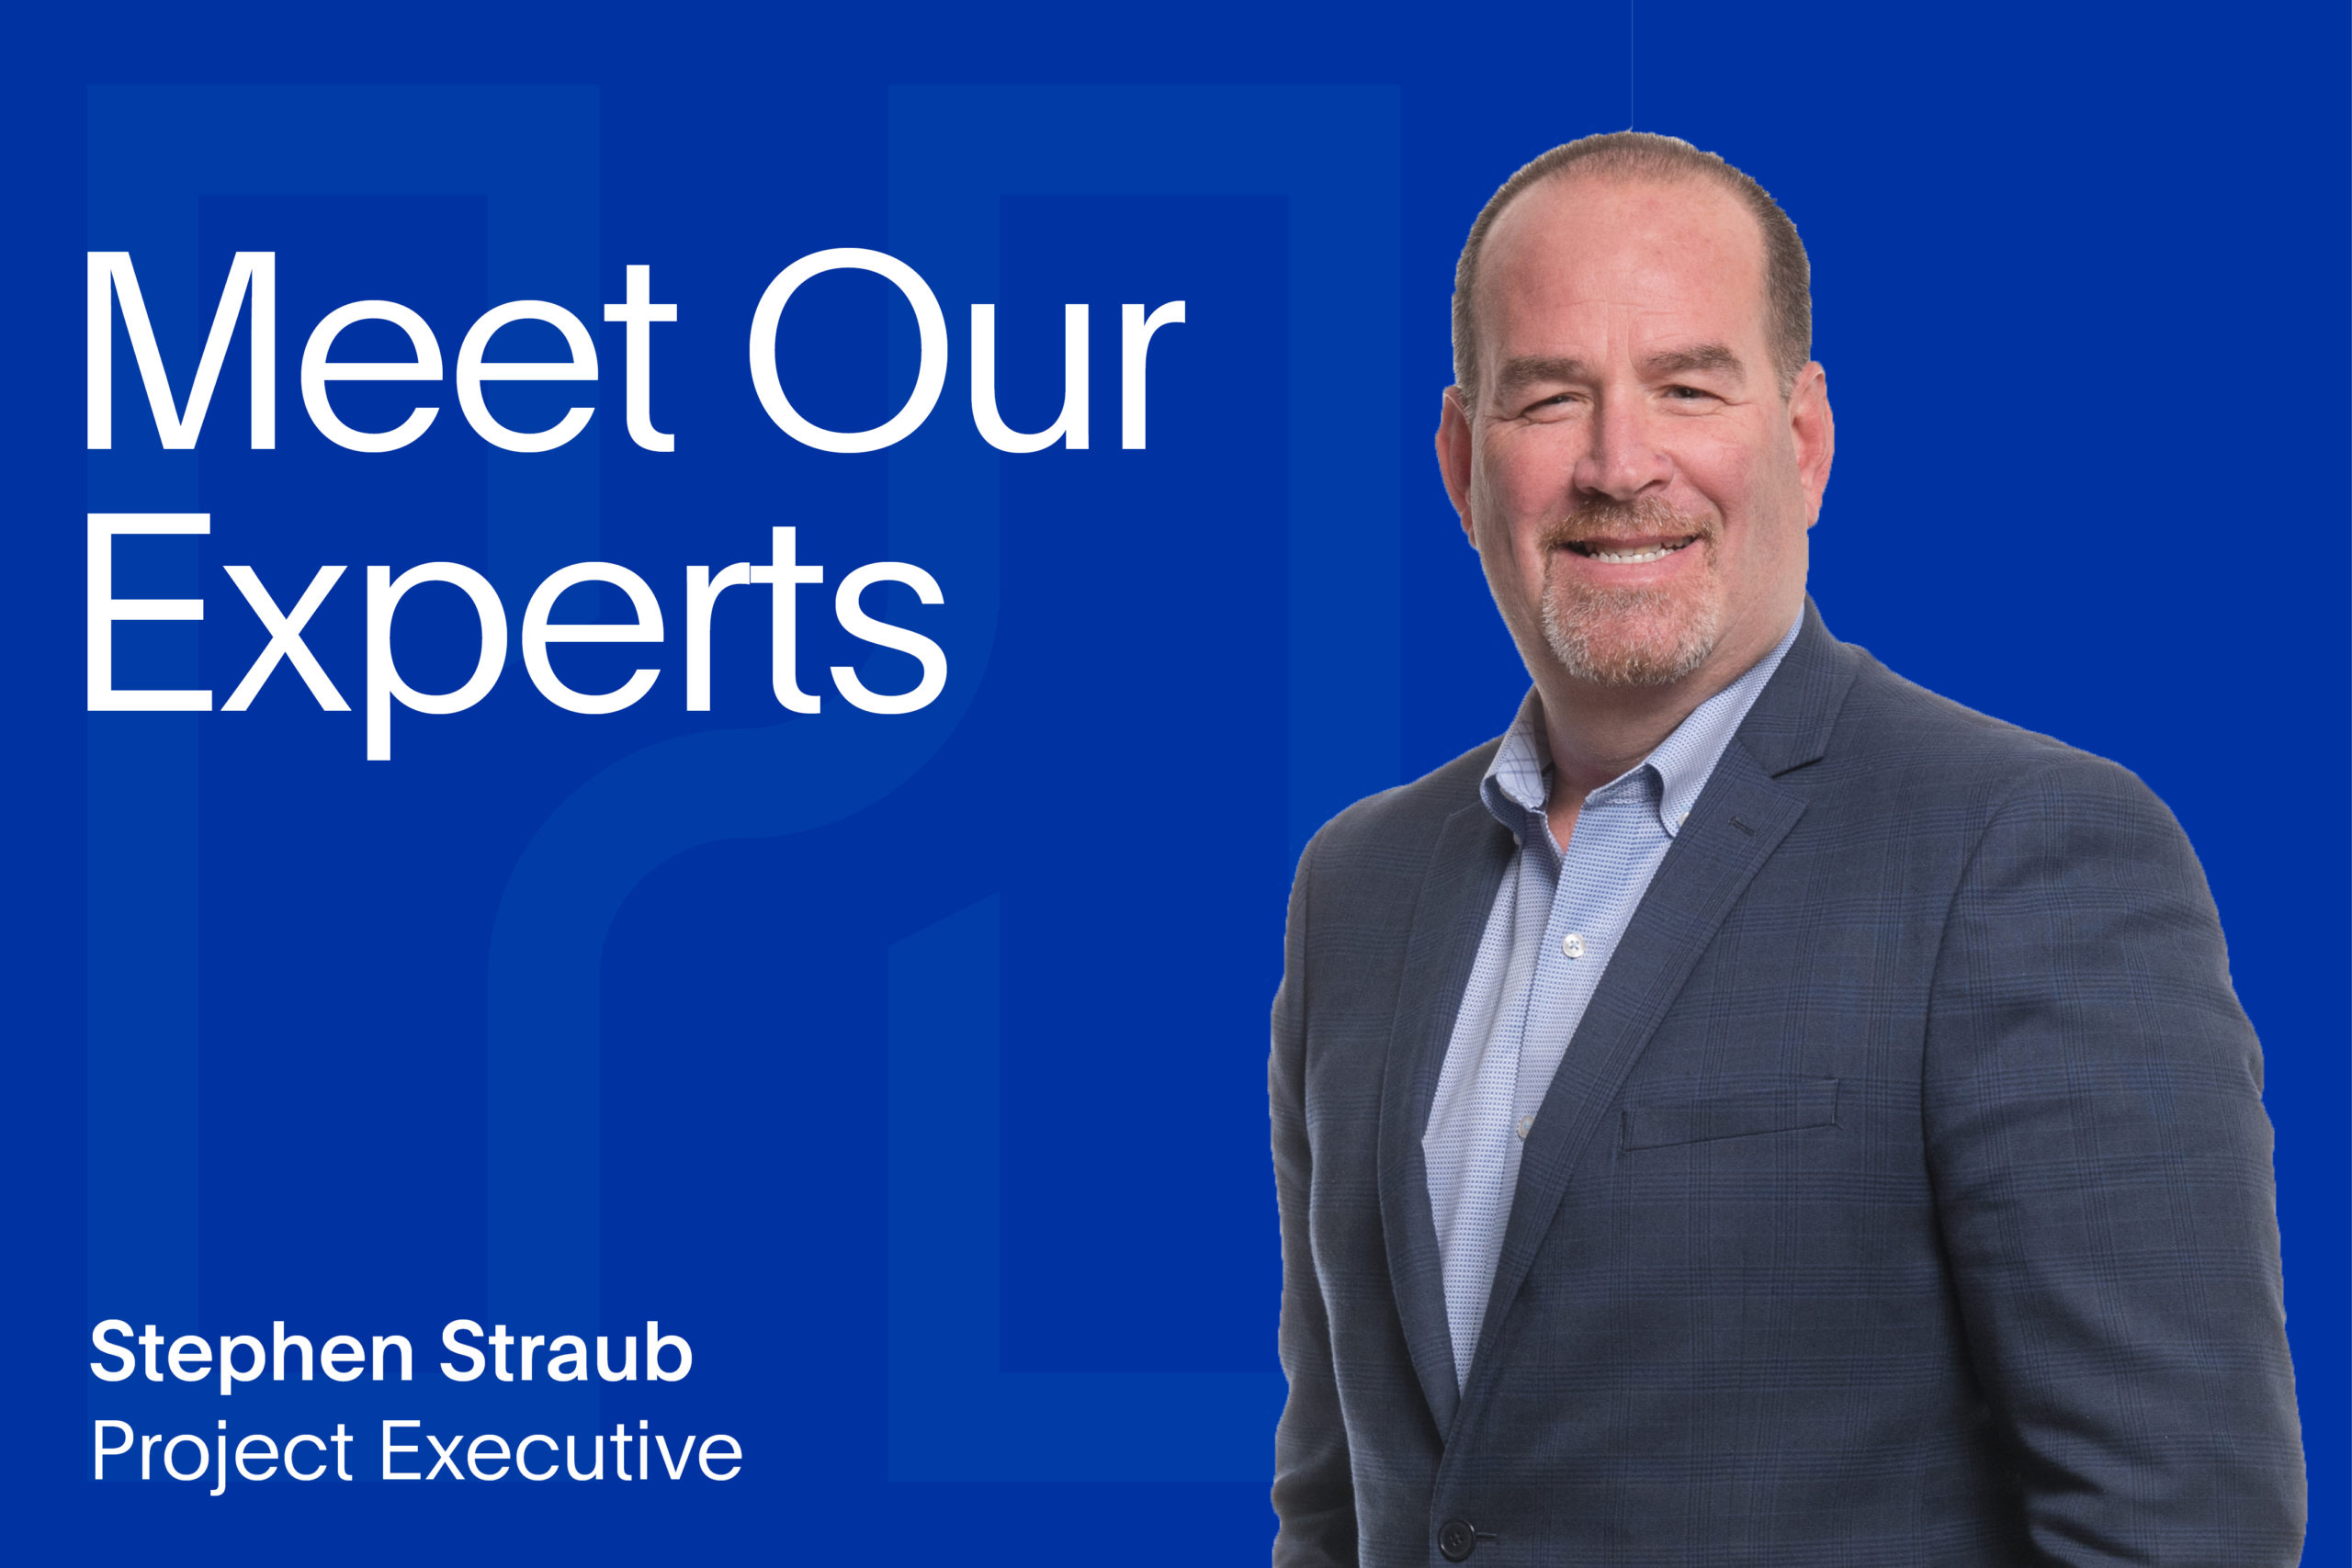 Meet Our Experts: Stephen Straub